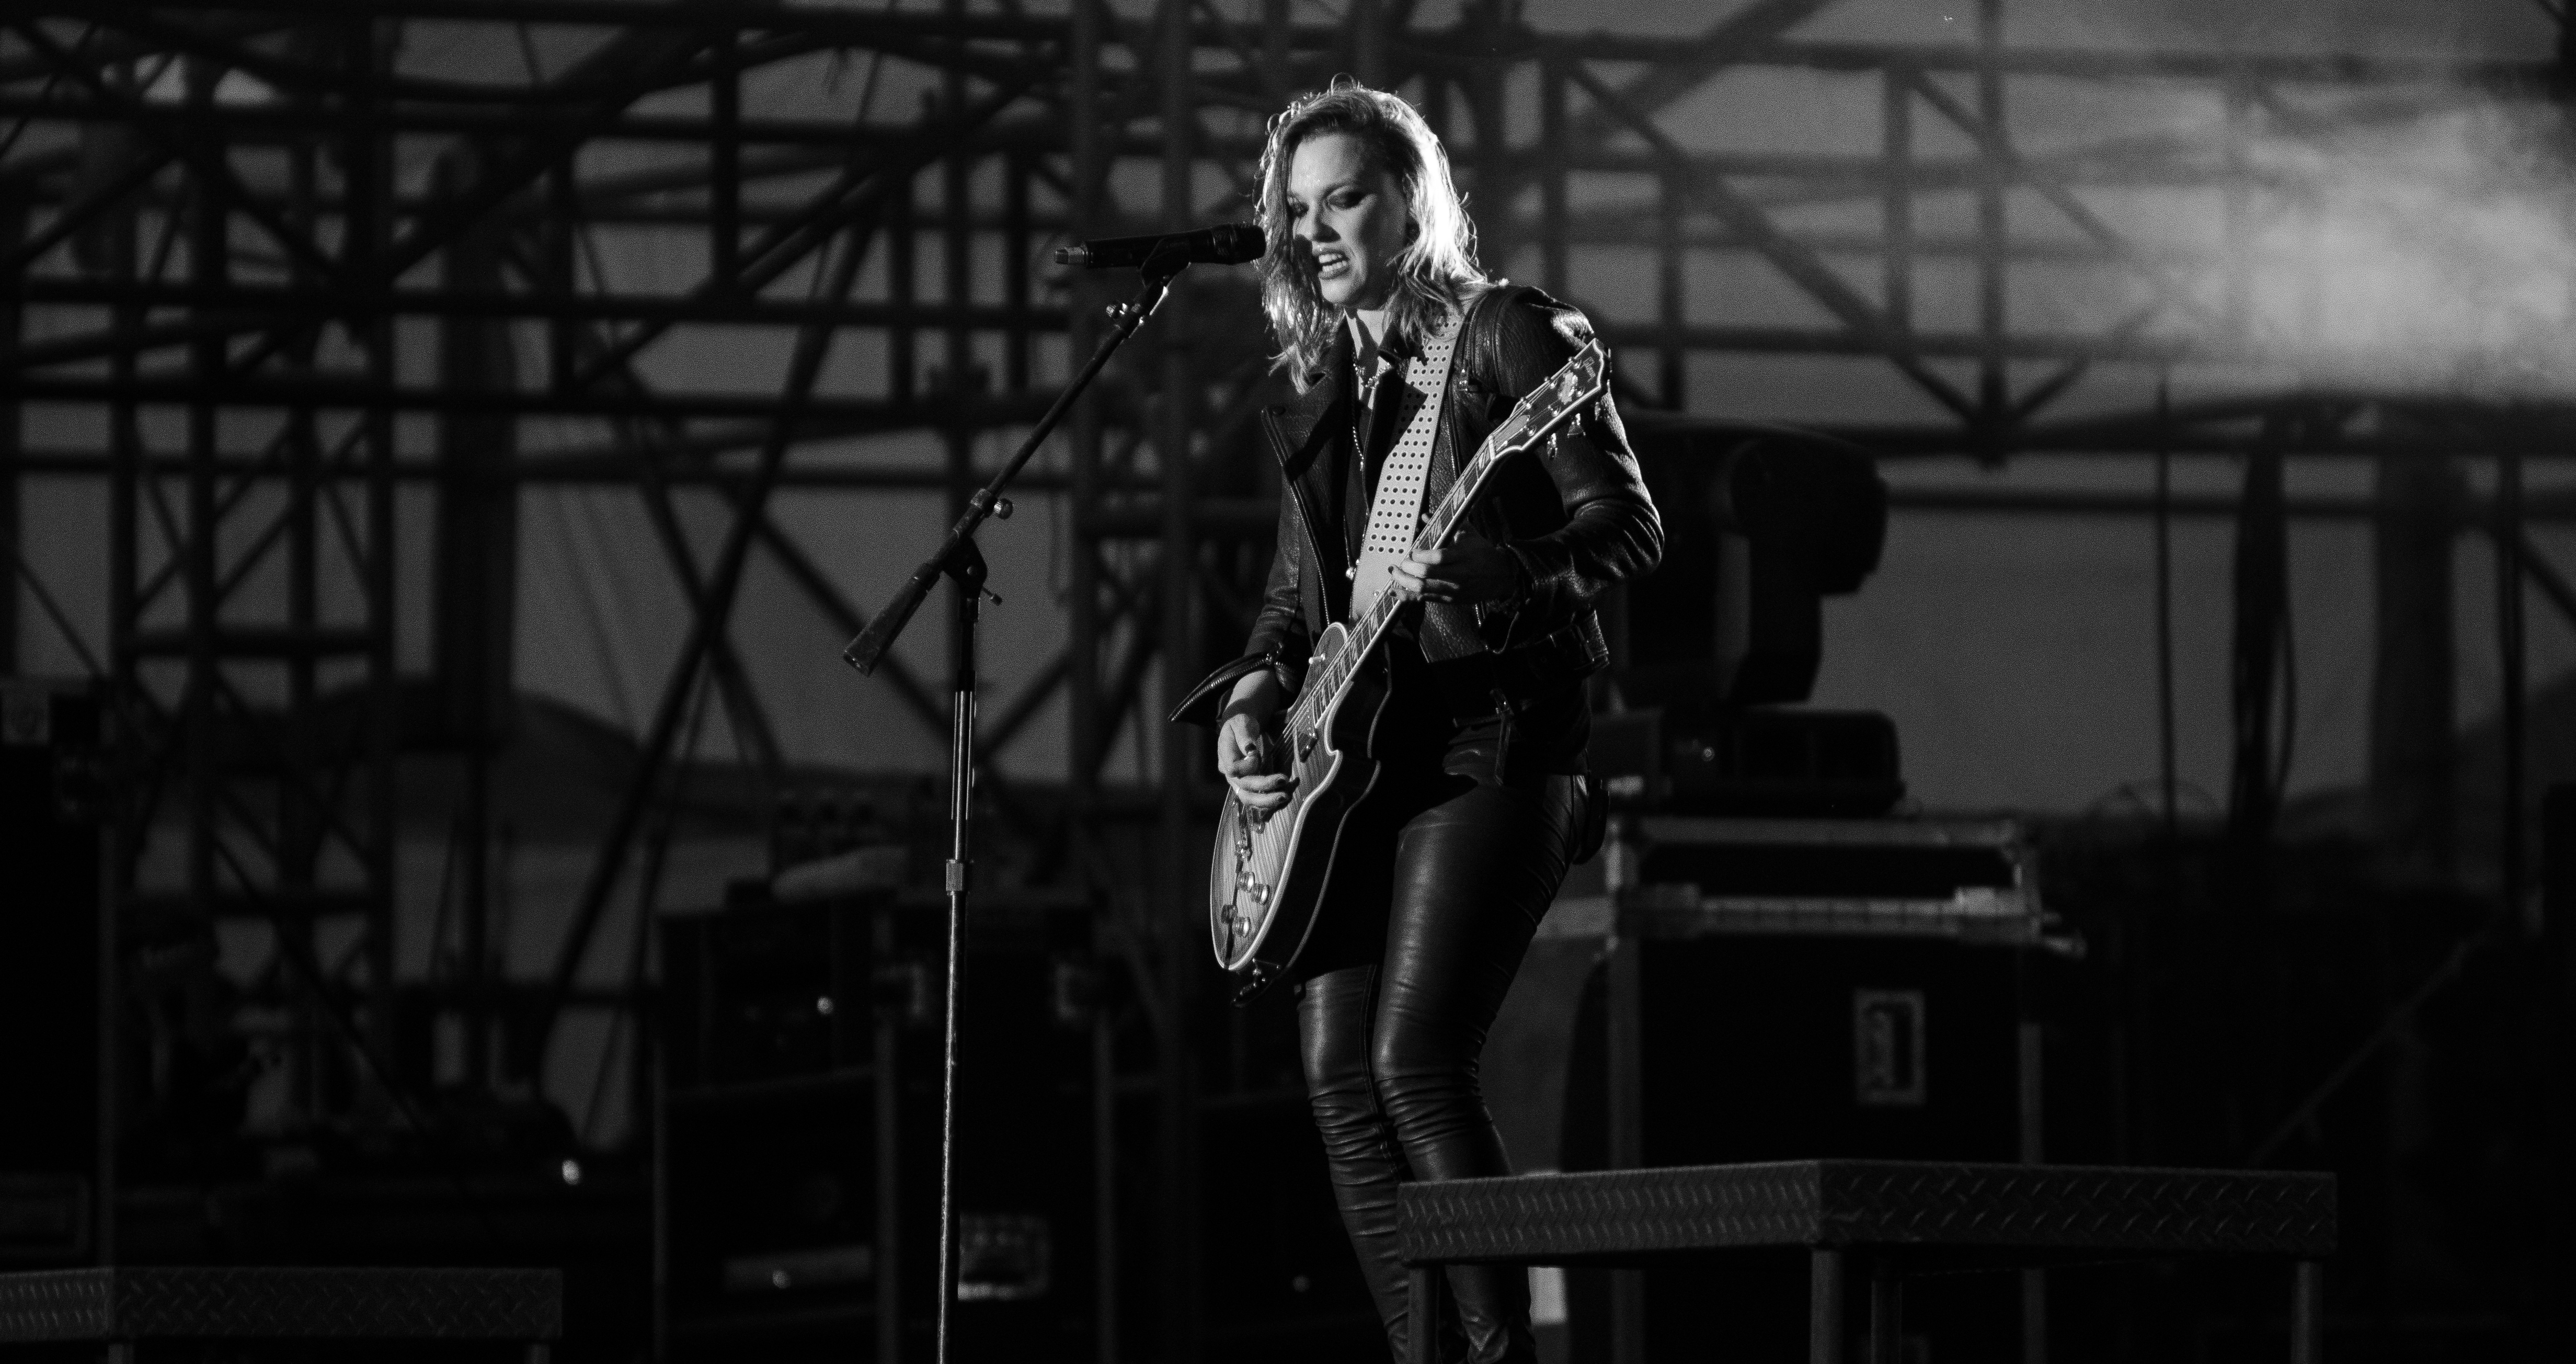 halestorm full discography download